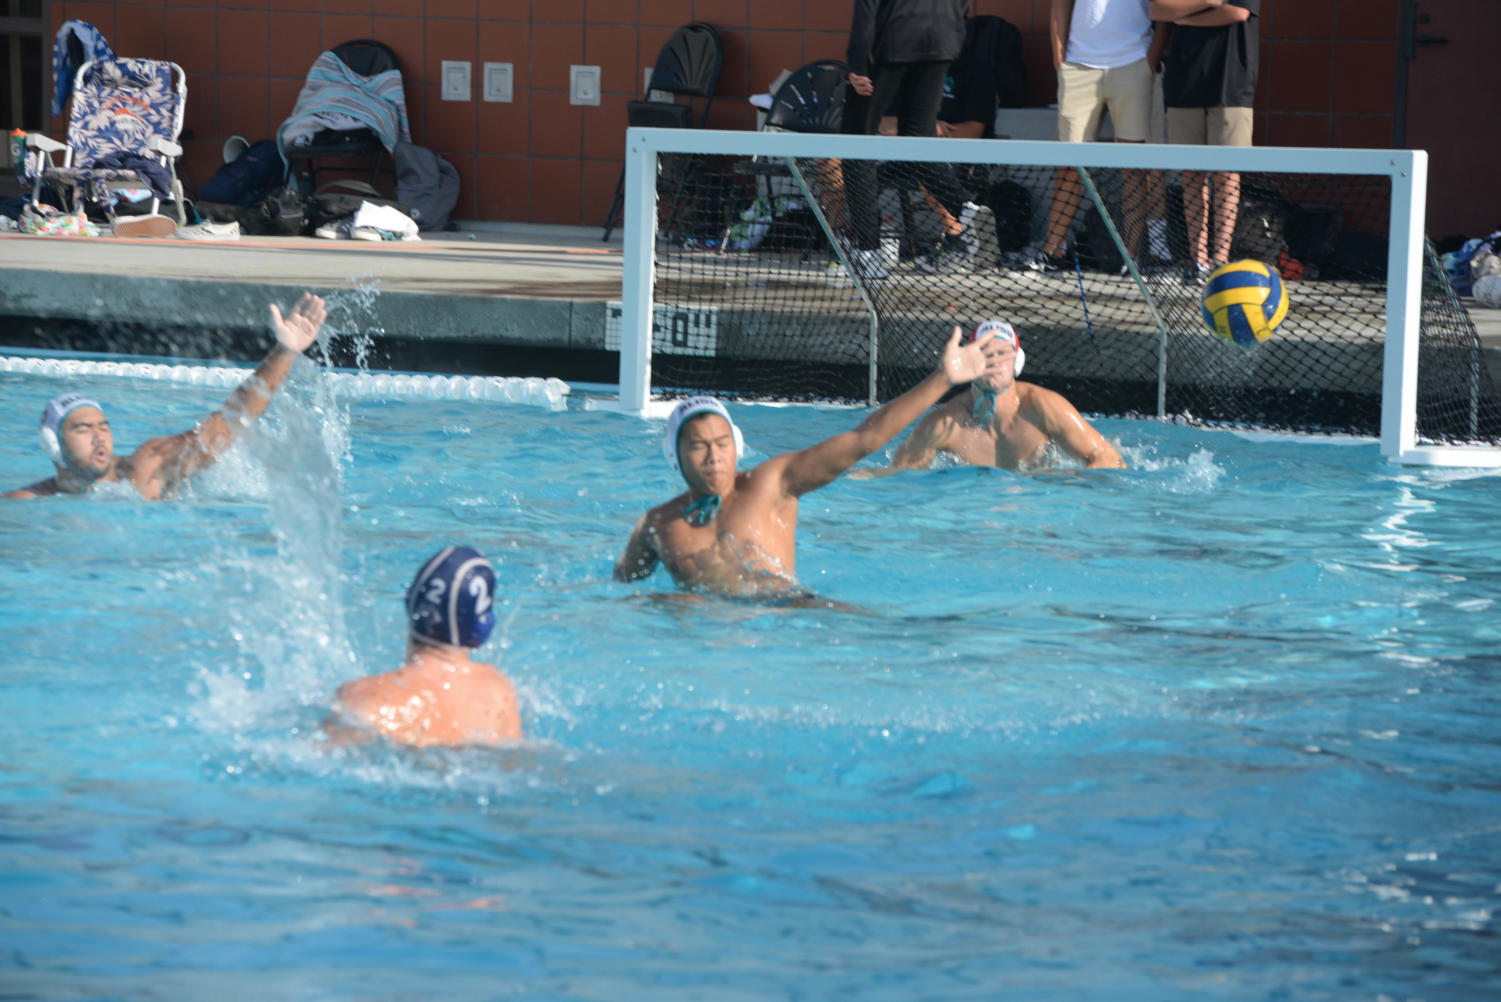 Ben Bandettini, 2, scores a goal against Aliso Niguel, contributing to the final score 12-10, where SJHHS lost.